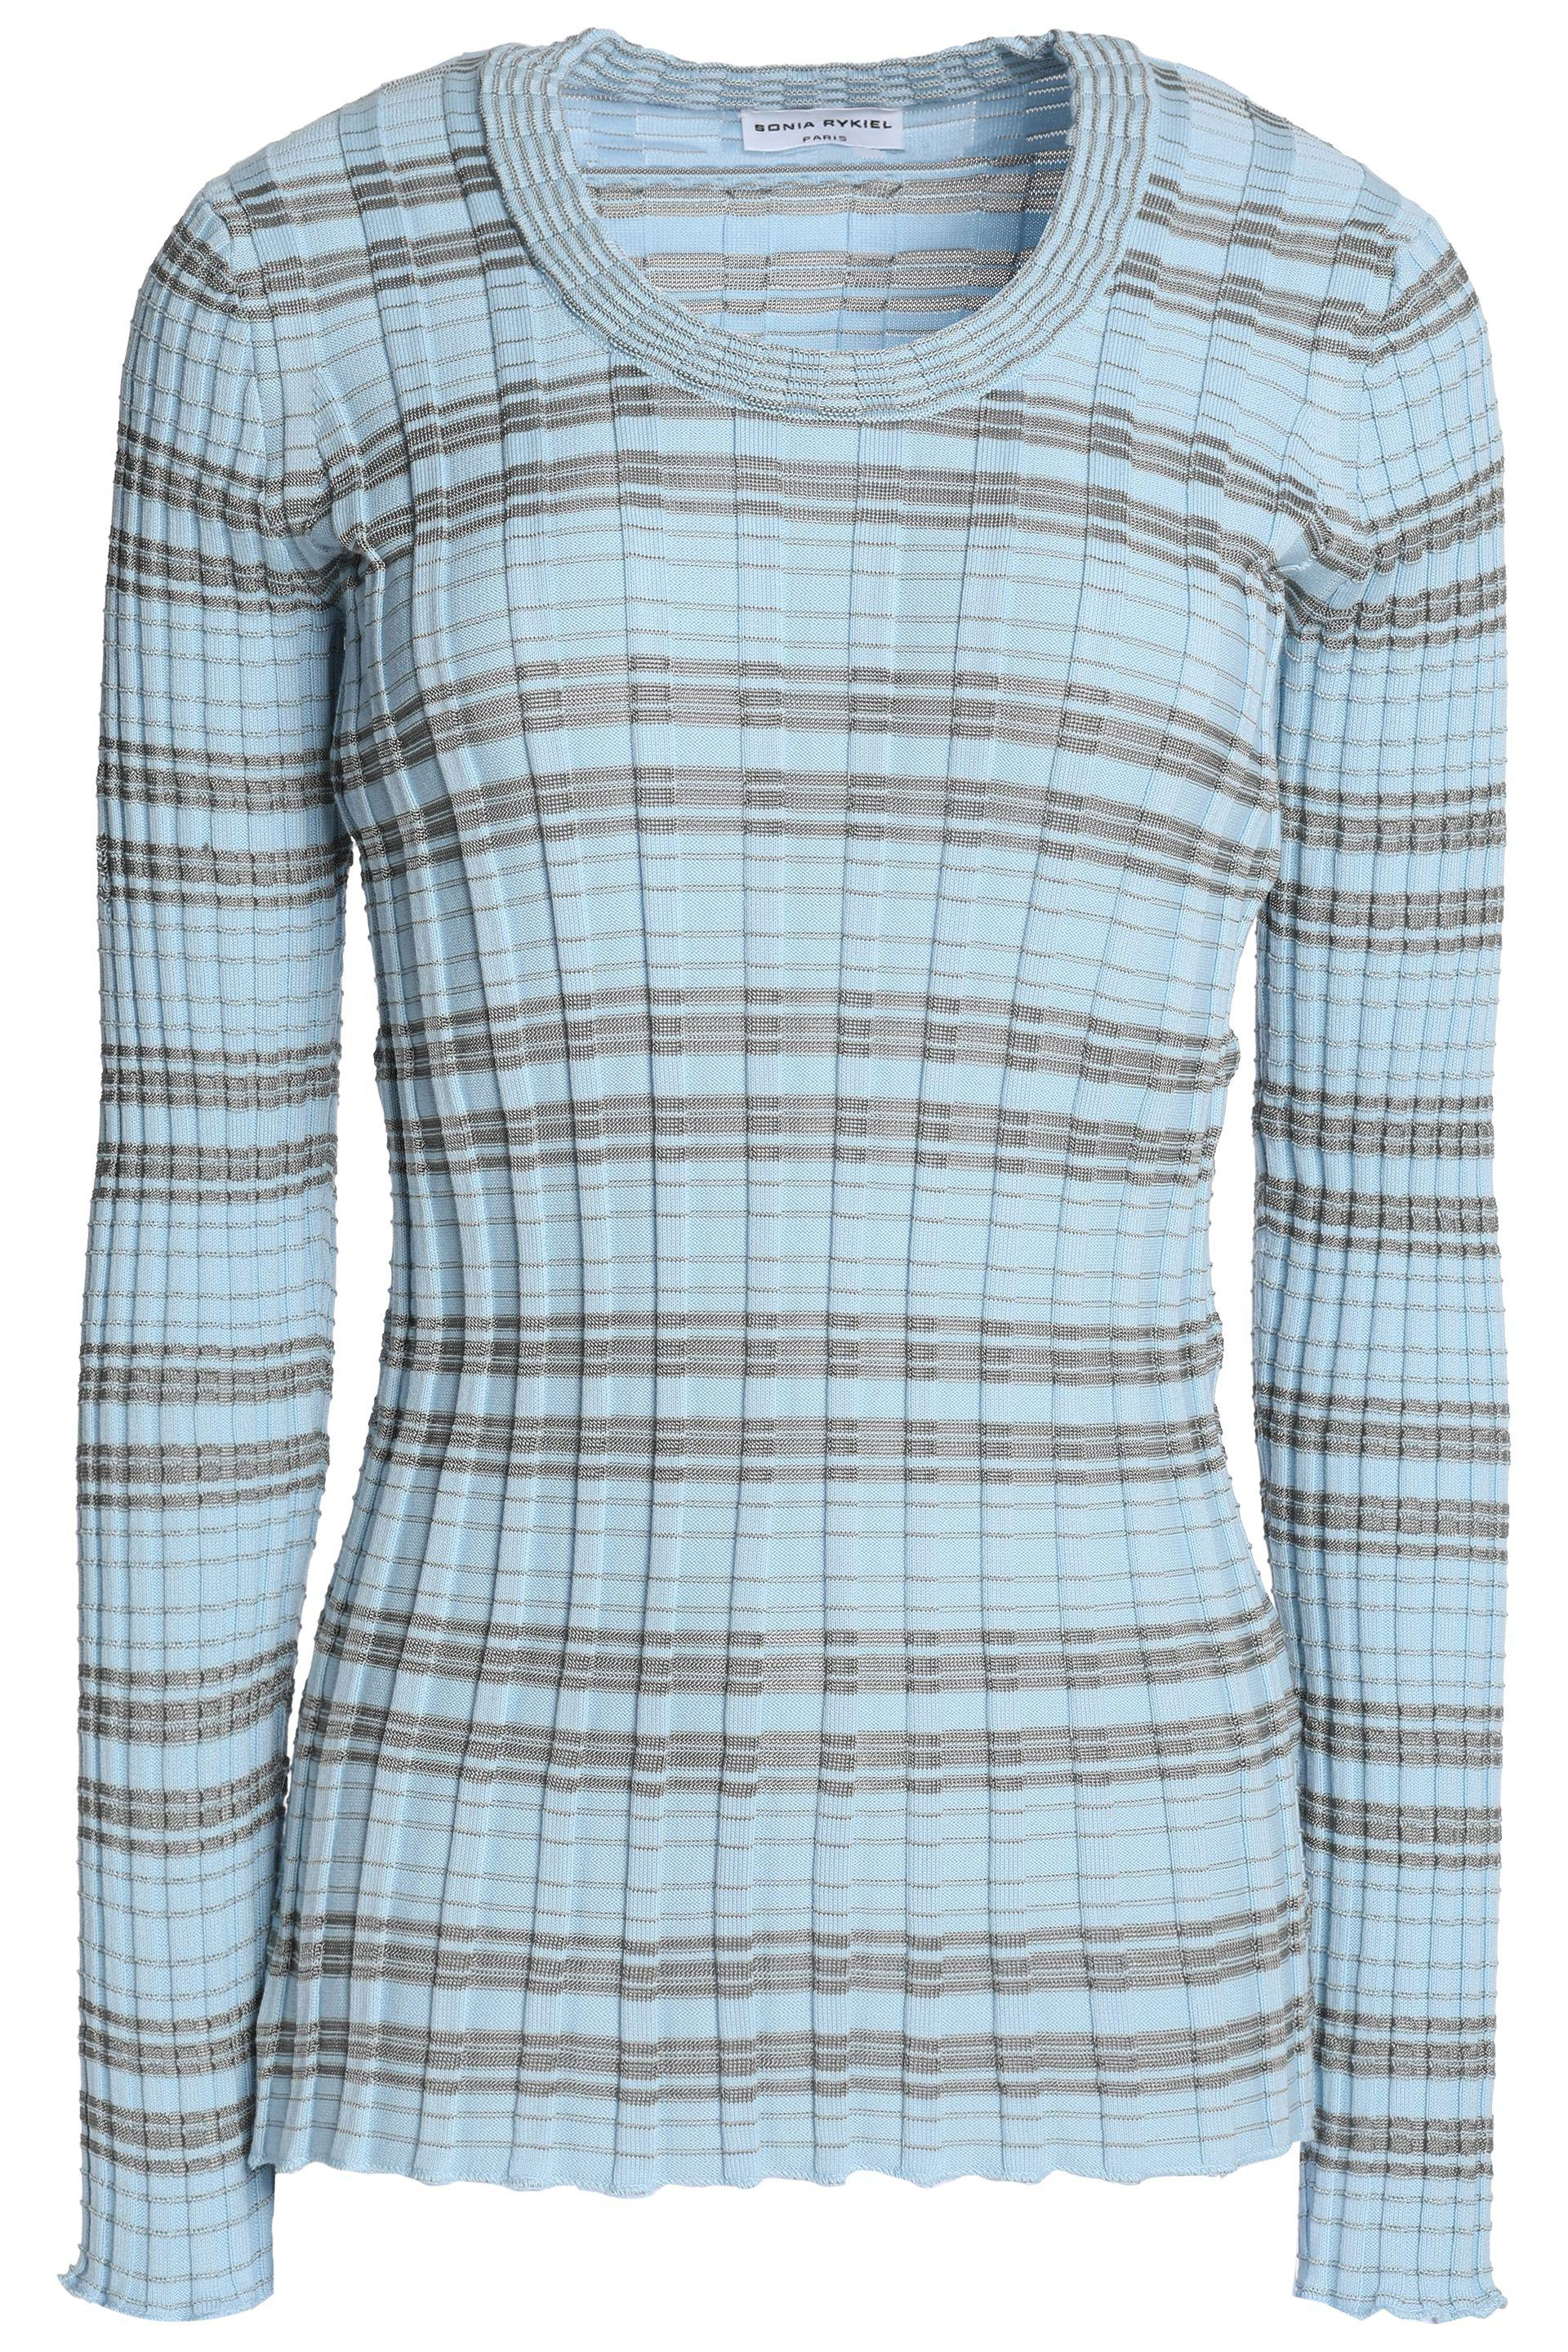 Clearance Best Seller Sonia Rykiel Woman Striped Ribbed Cotton-blend Sweater Sky Blue Size XL Sonia Rykiel Buy Cheap Pictures Buy Cheap Comfortable Buy Cheap Supply w2Qlle